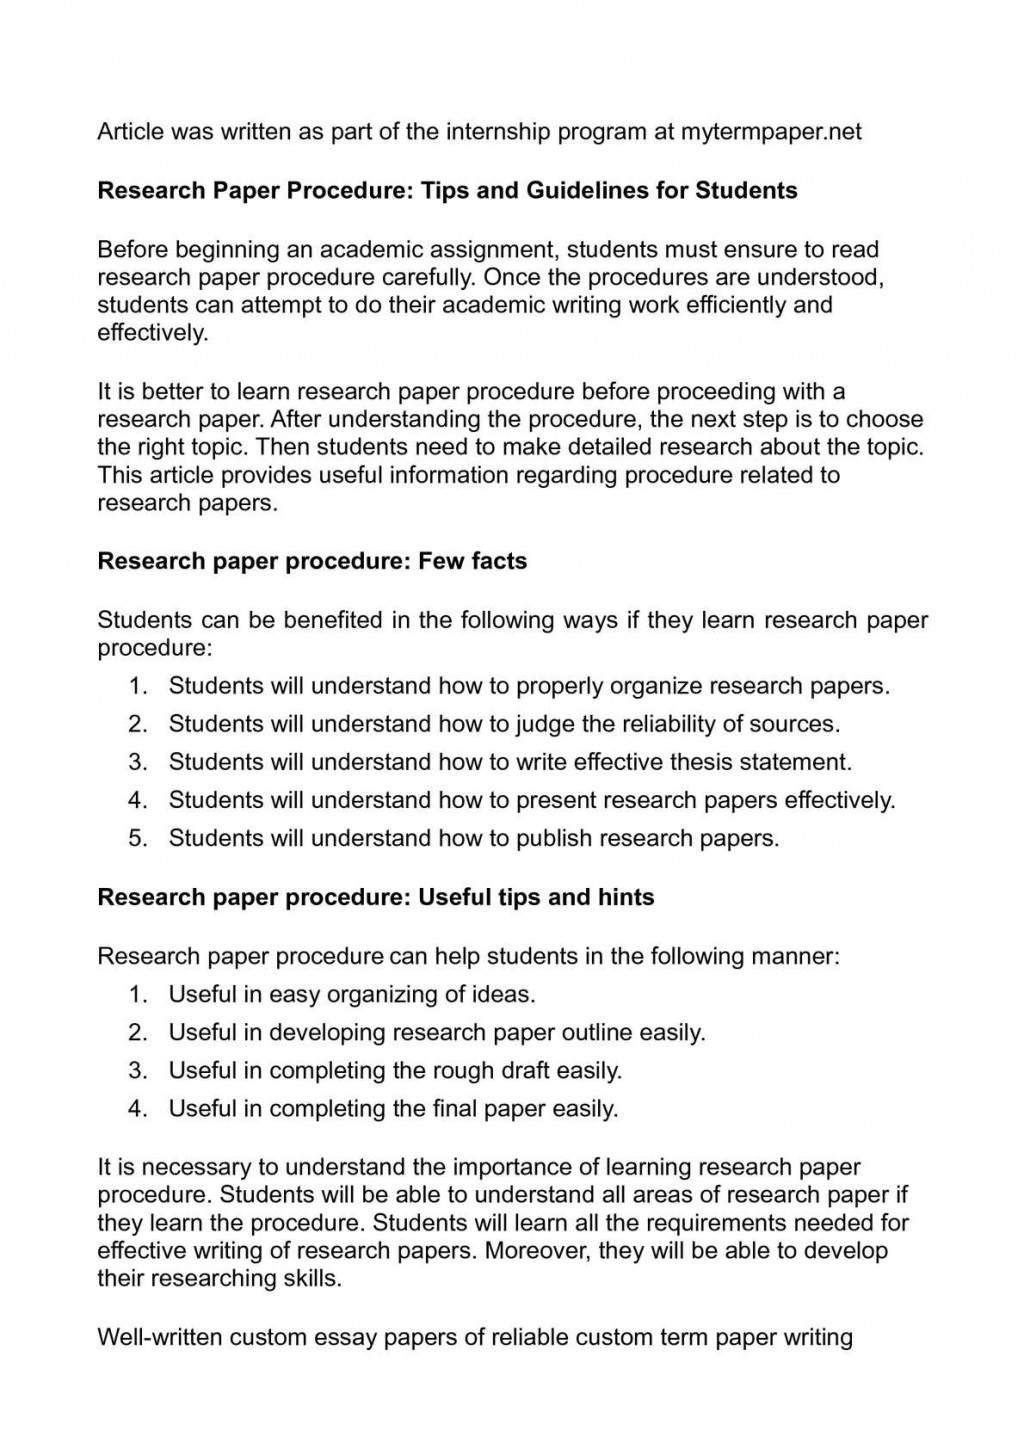 008 Developing Research Paper Outline Singular A Large